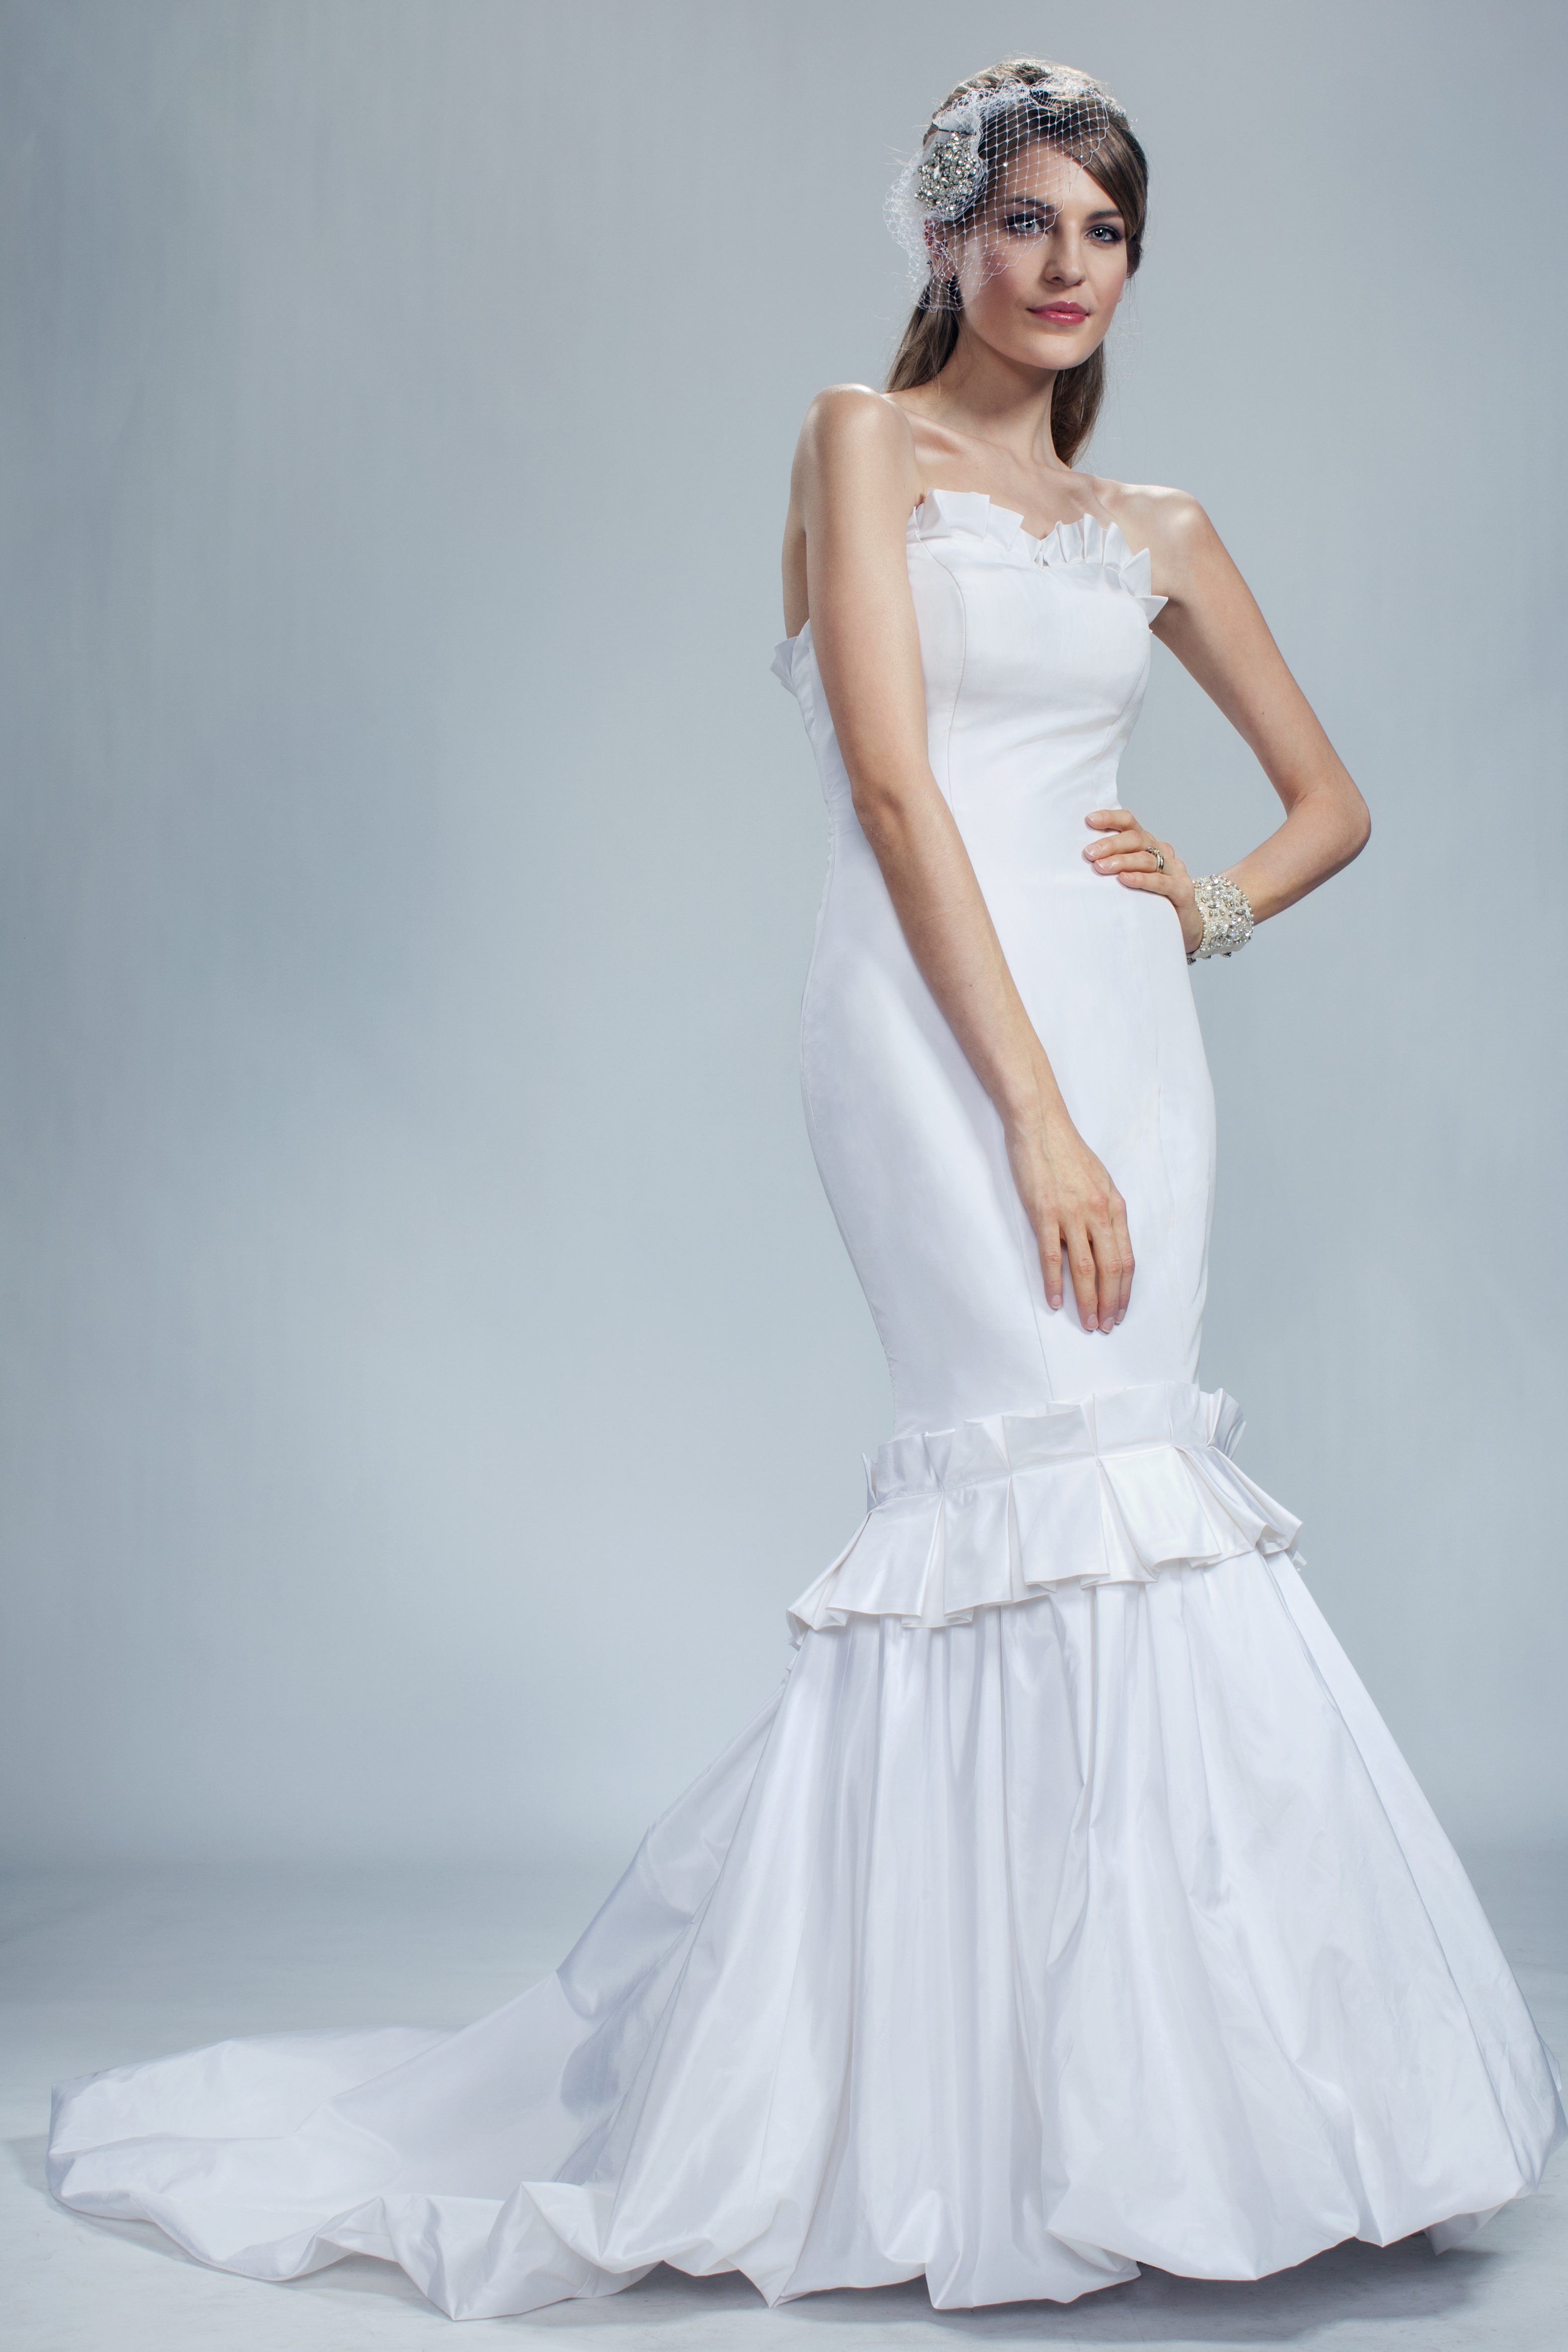 Wedding Dresses, Fashion, Strapless, Strapless Wedding Dresses, Buttons, Trumpet, Silk, Olia zavozina, silk taffeta, pleated belt, Silk Wedding Dresses